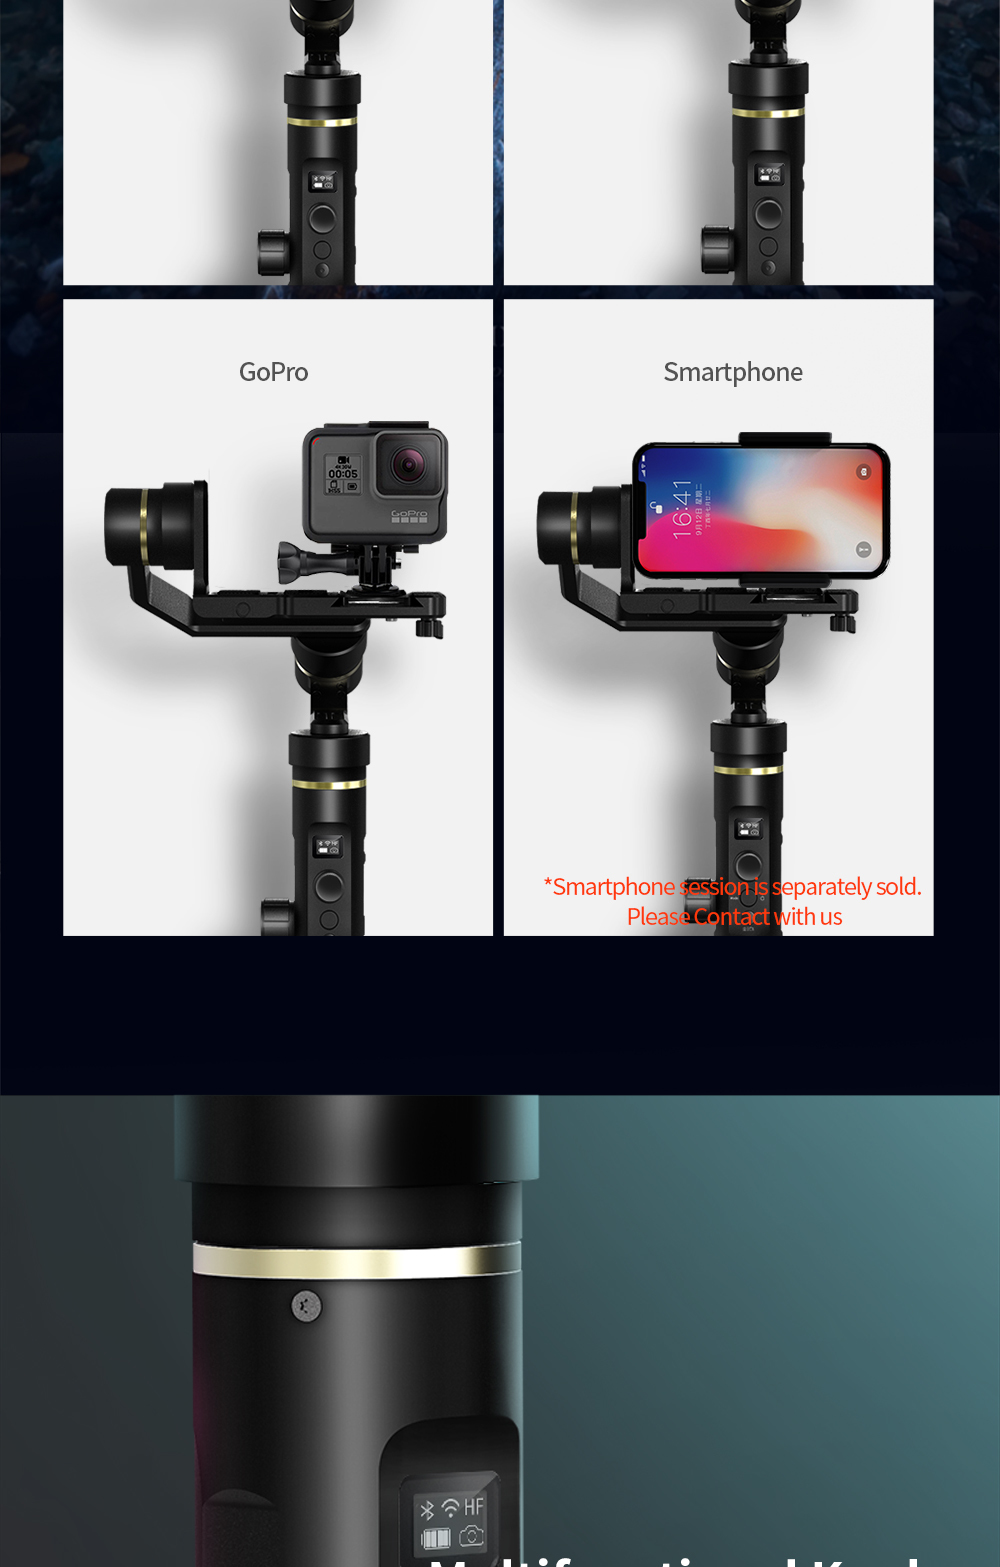 FeiyuTech G6 Plus 3-Axis Handheld Gimbal Stabilizer for Mirrorless Camera Pocket Camera GoPro Smartphone Payload 800g Feiyu G6P 3